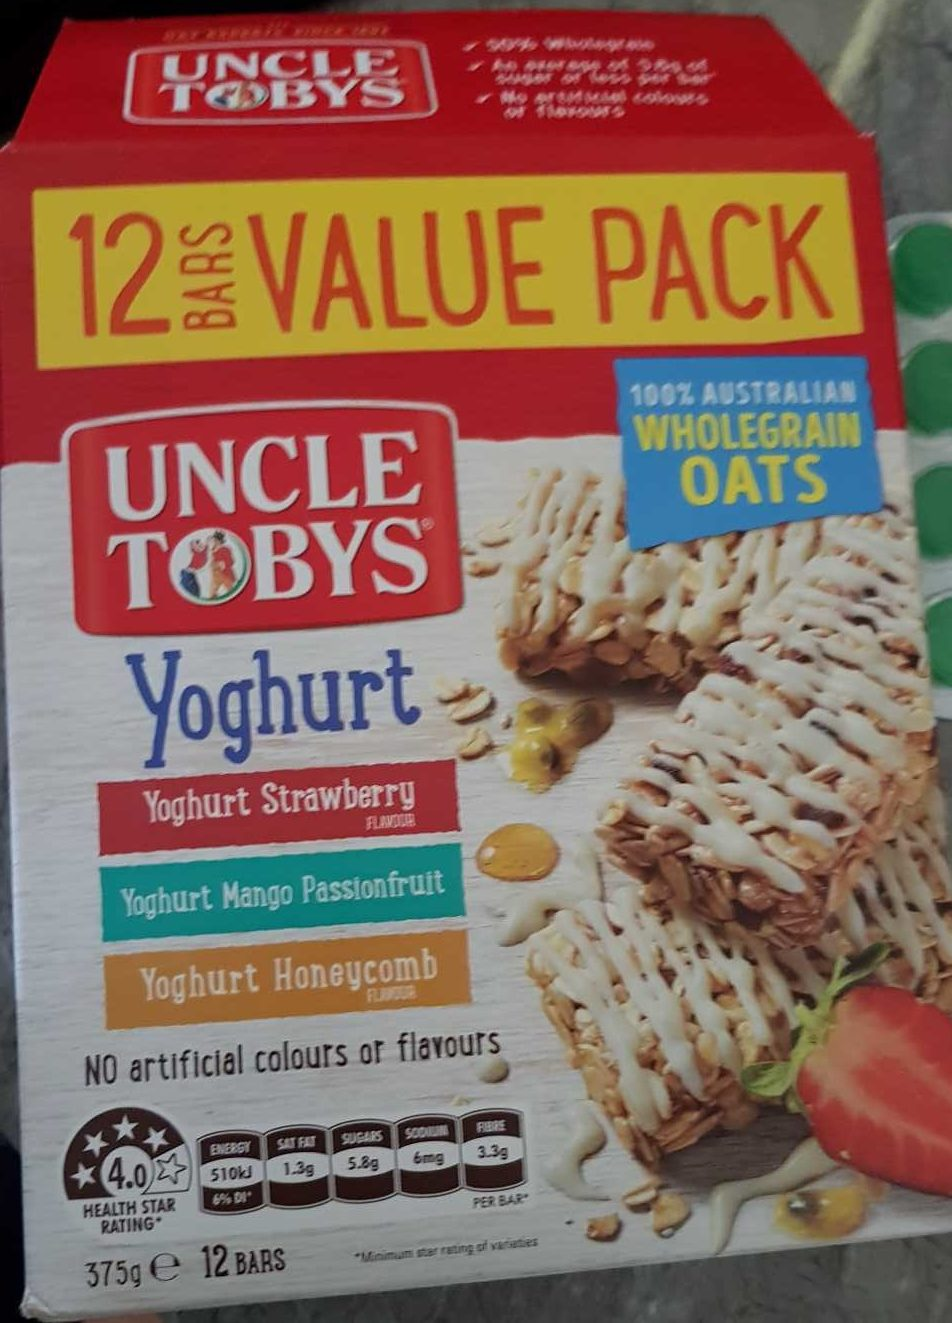 Uncle Tobys Yoghurt 12 Bar Value Pack - Product